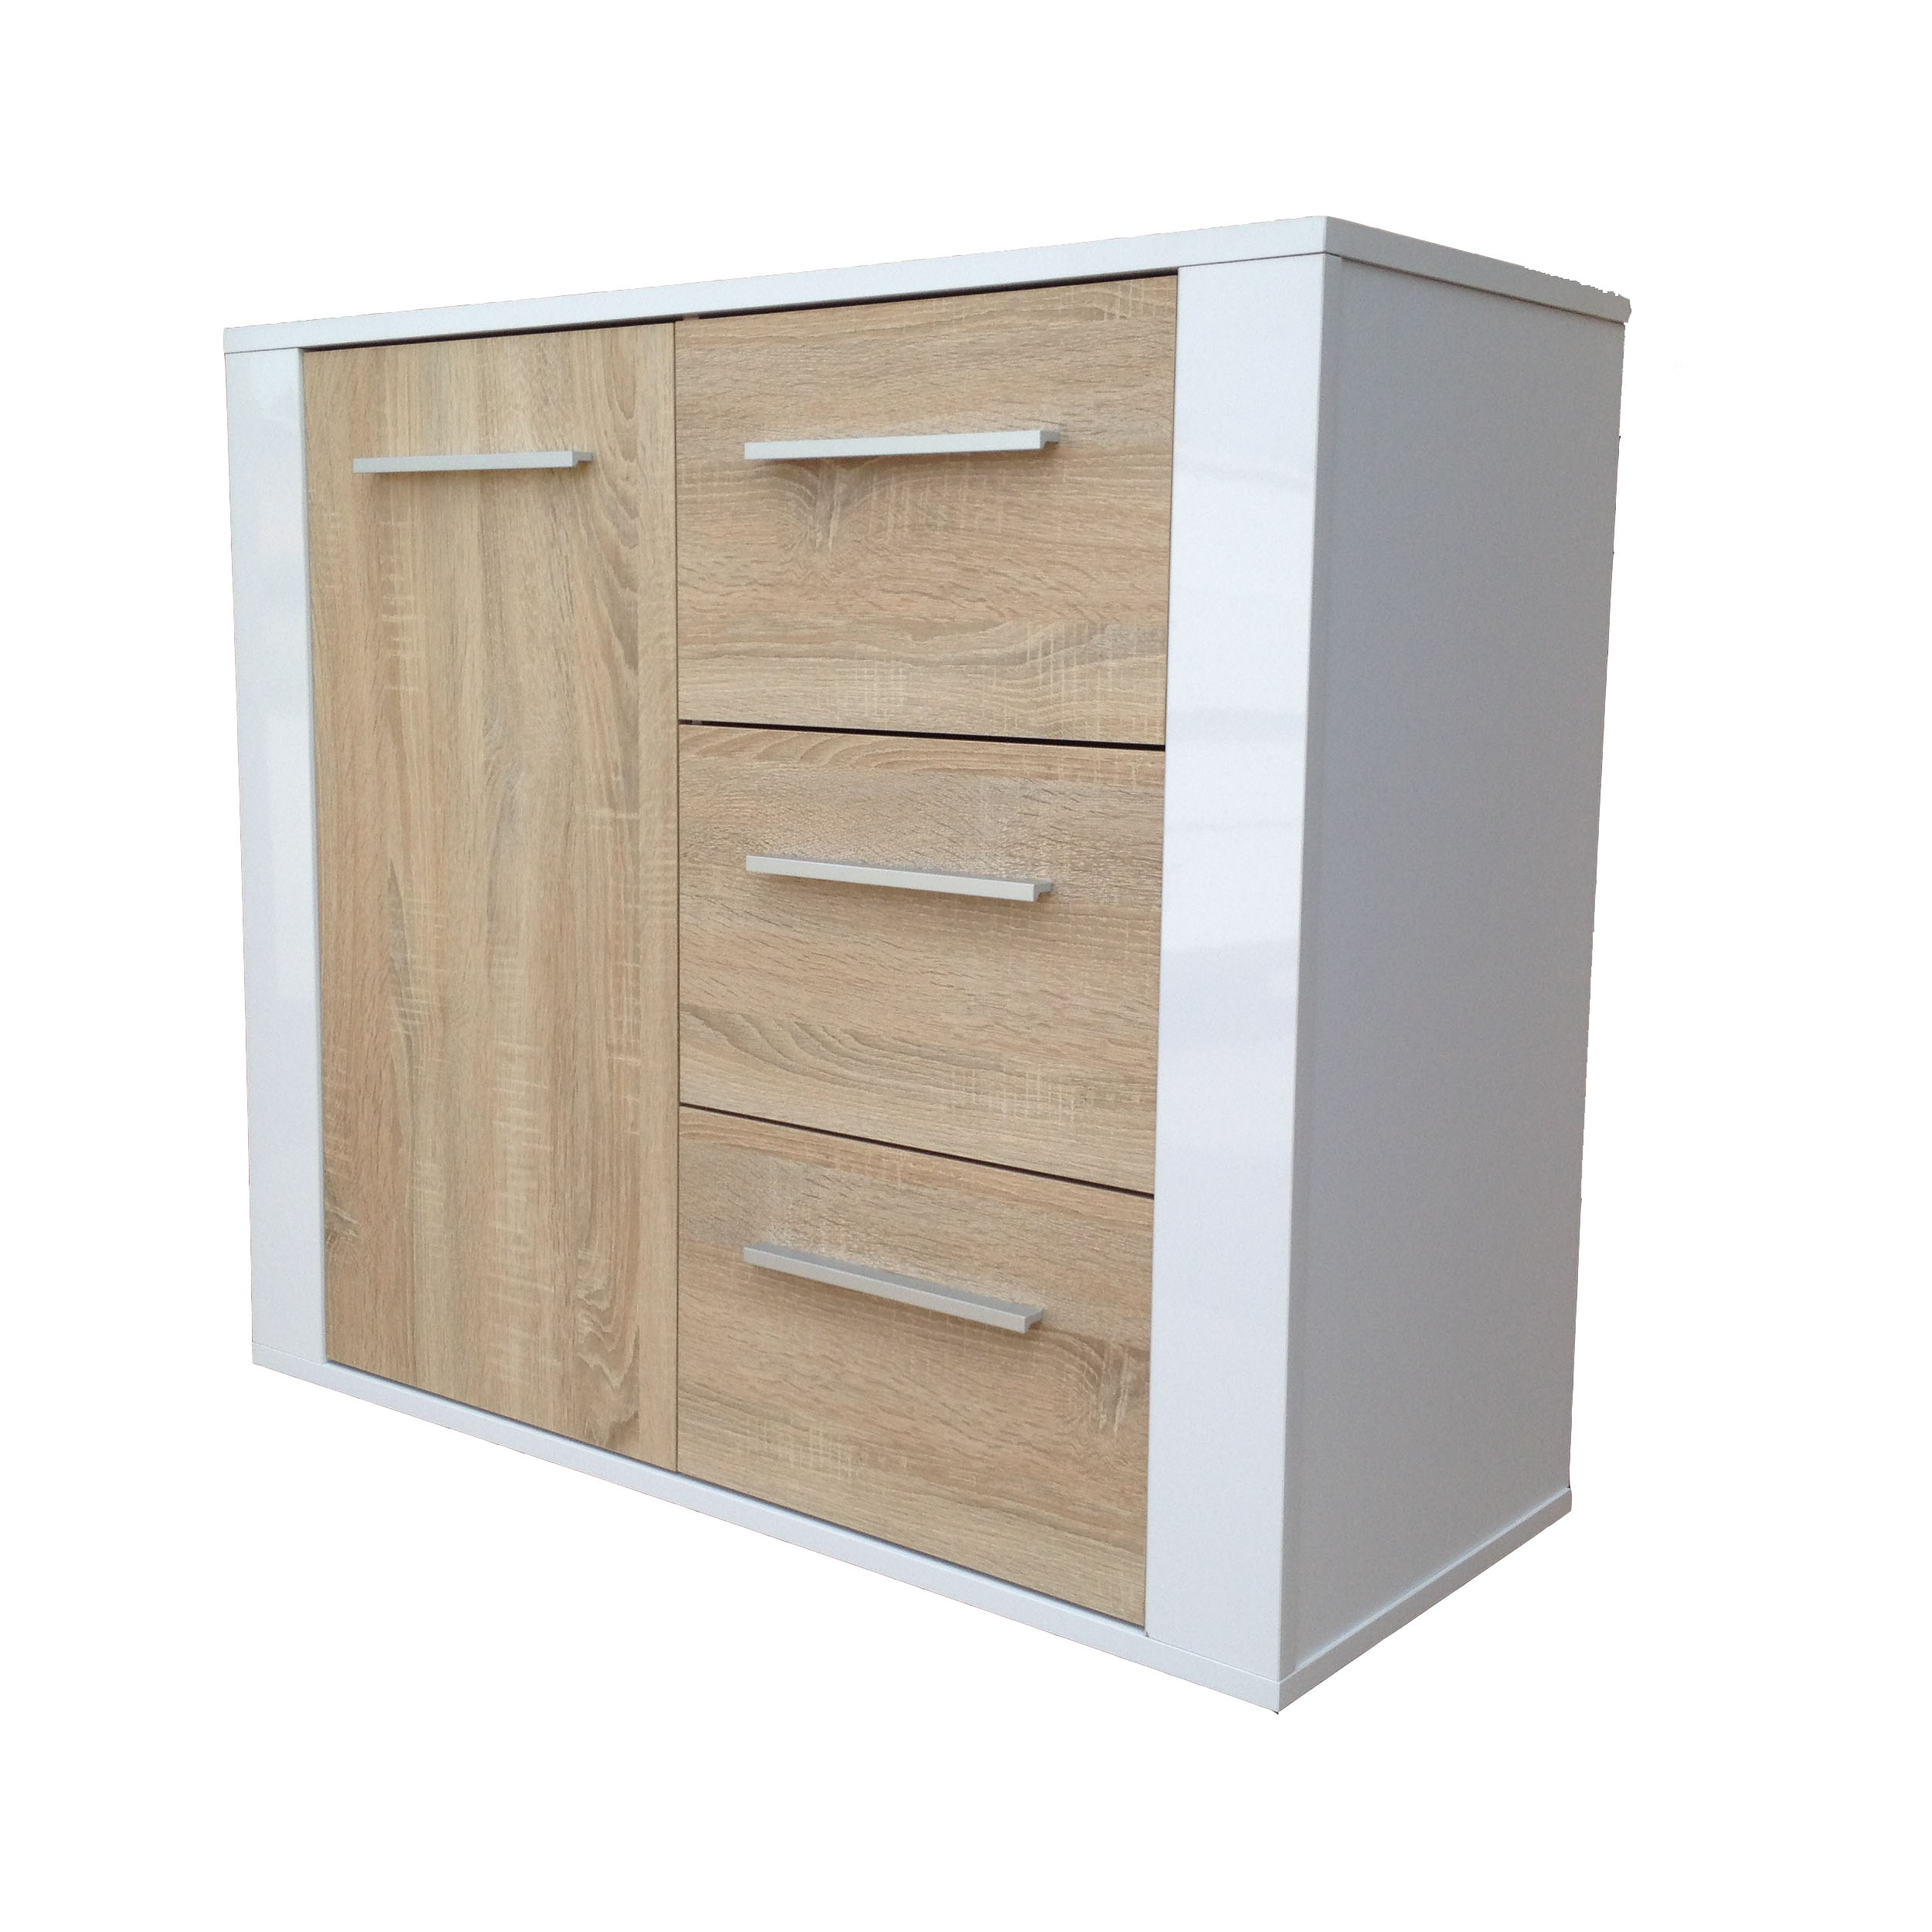 kommode mehrzweckkommode aktenschrank schrank mod k449 weiss hochglanz eiche ebay. Black Bedroom Furniture Sets. Home Design Ideas